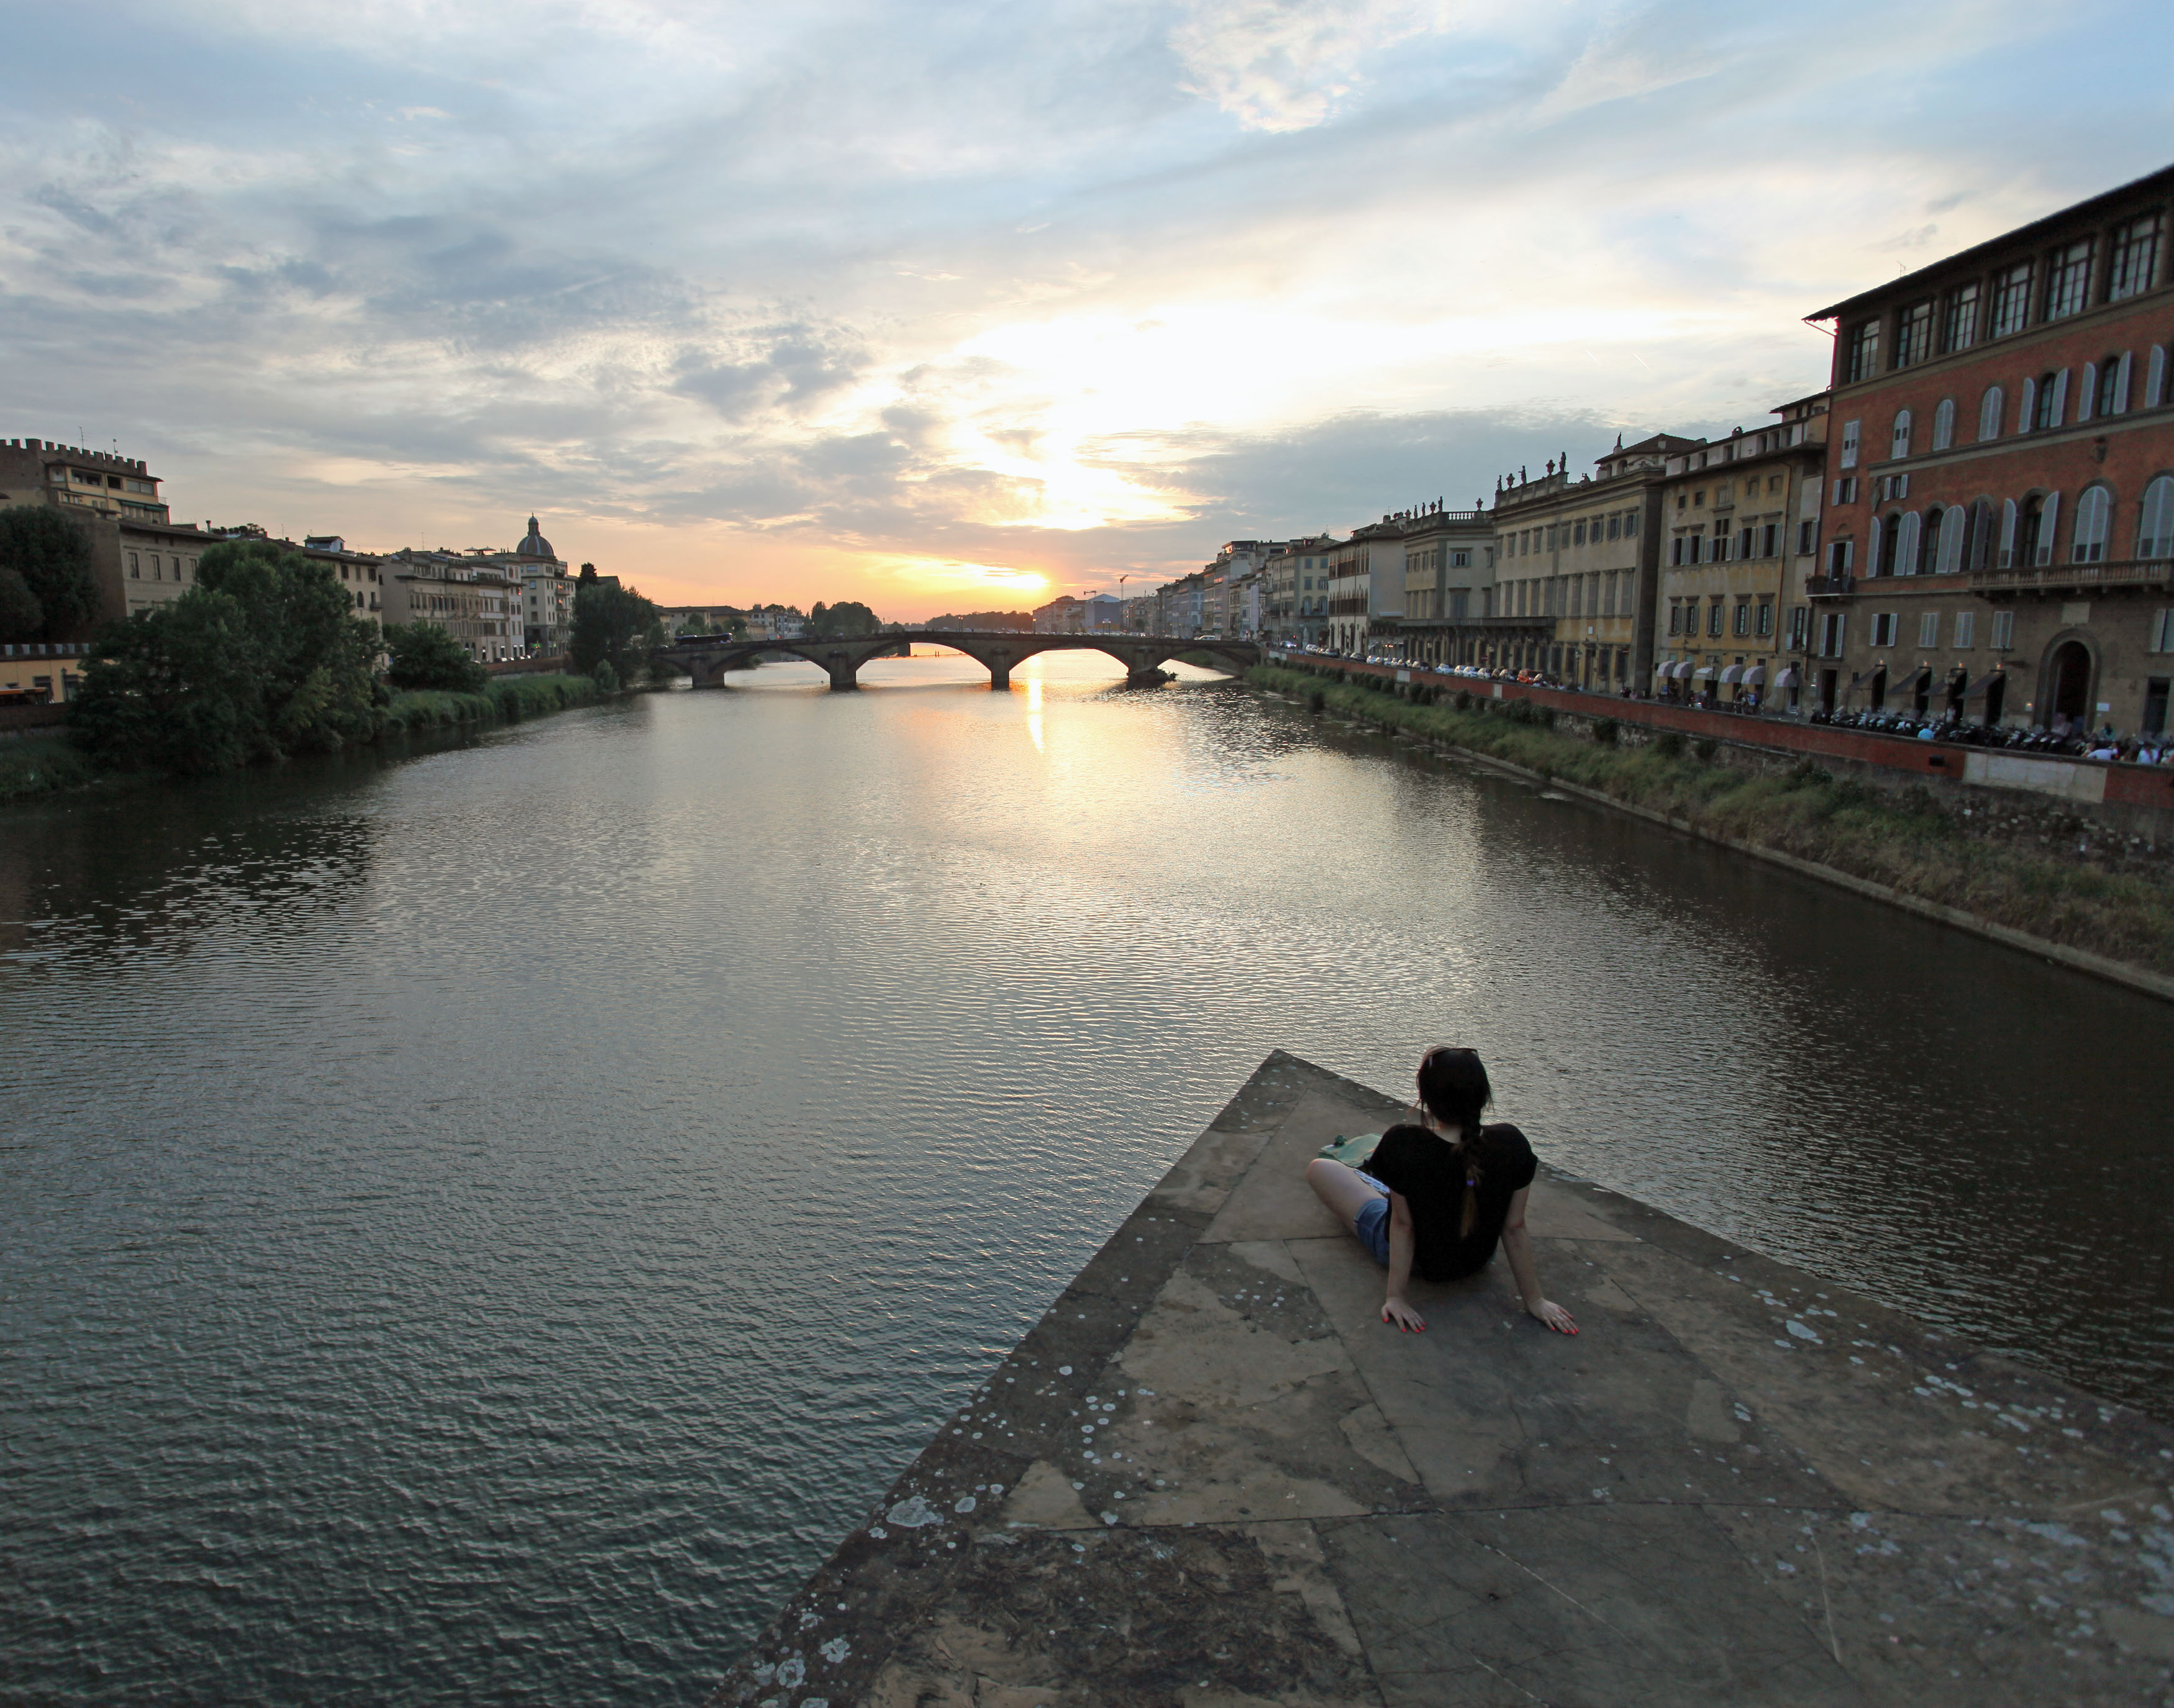 Arno River in Florence